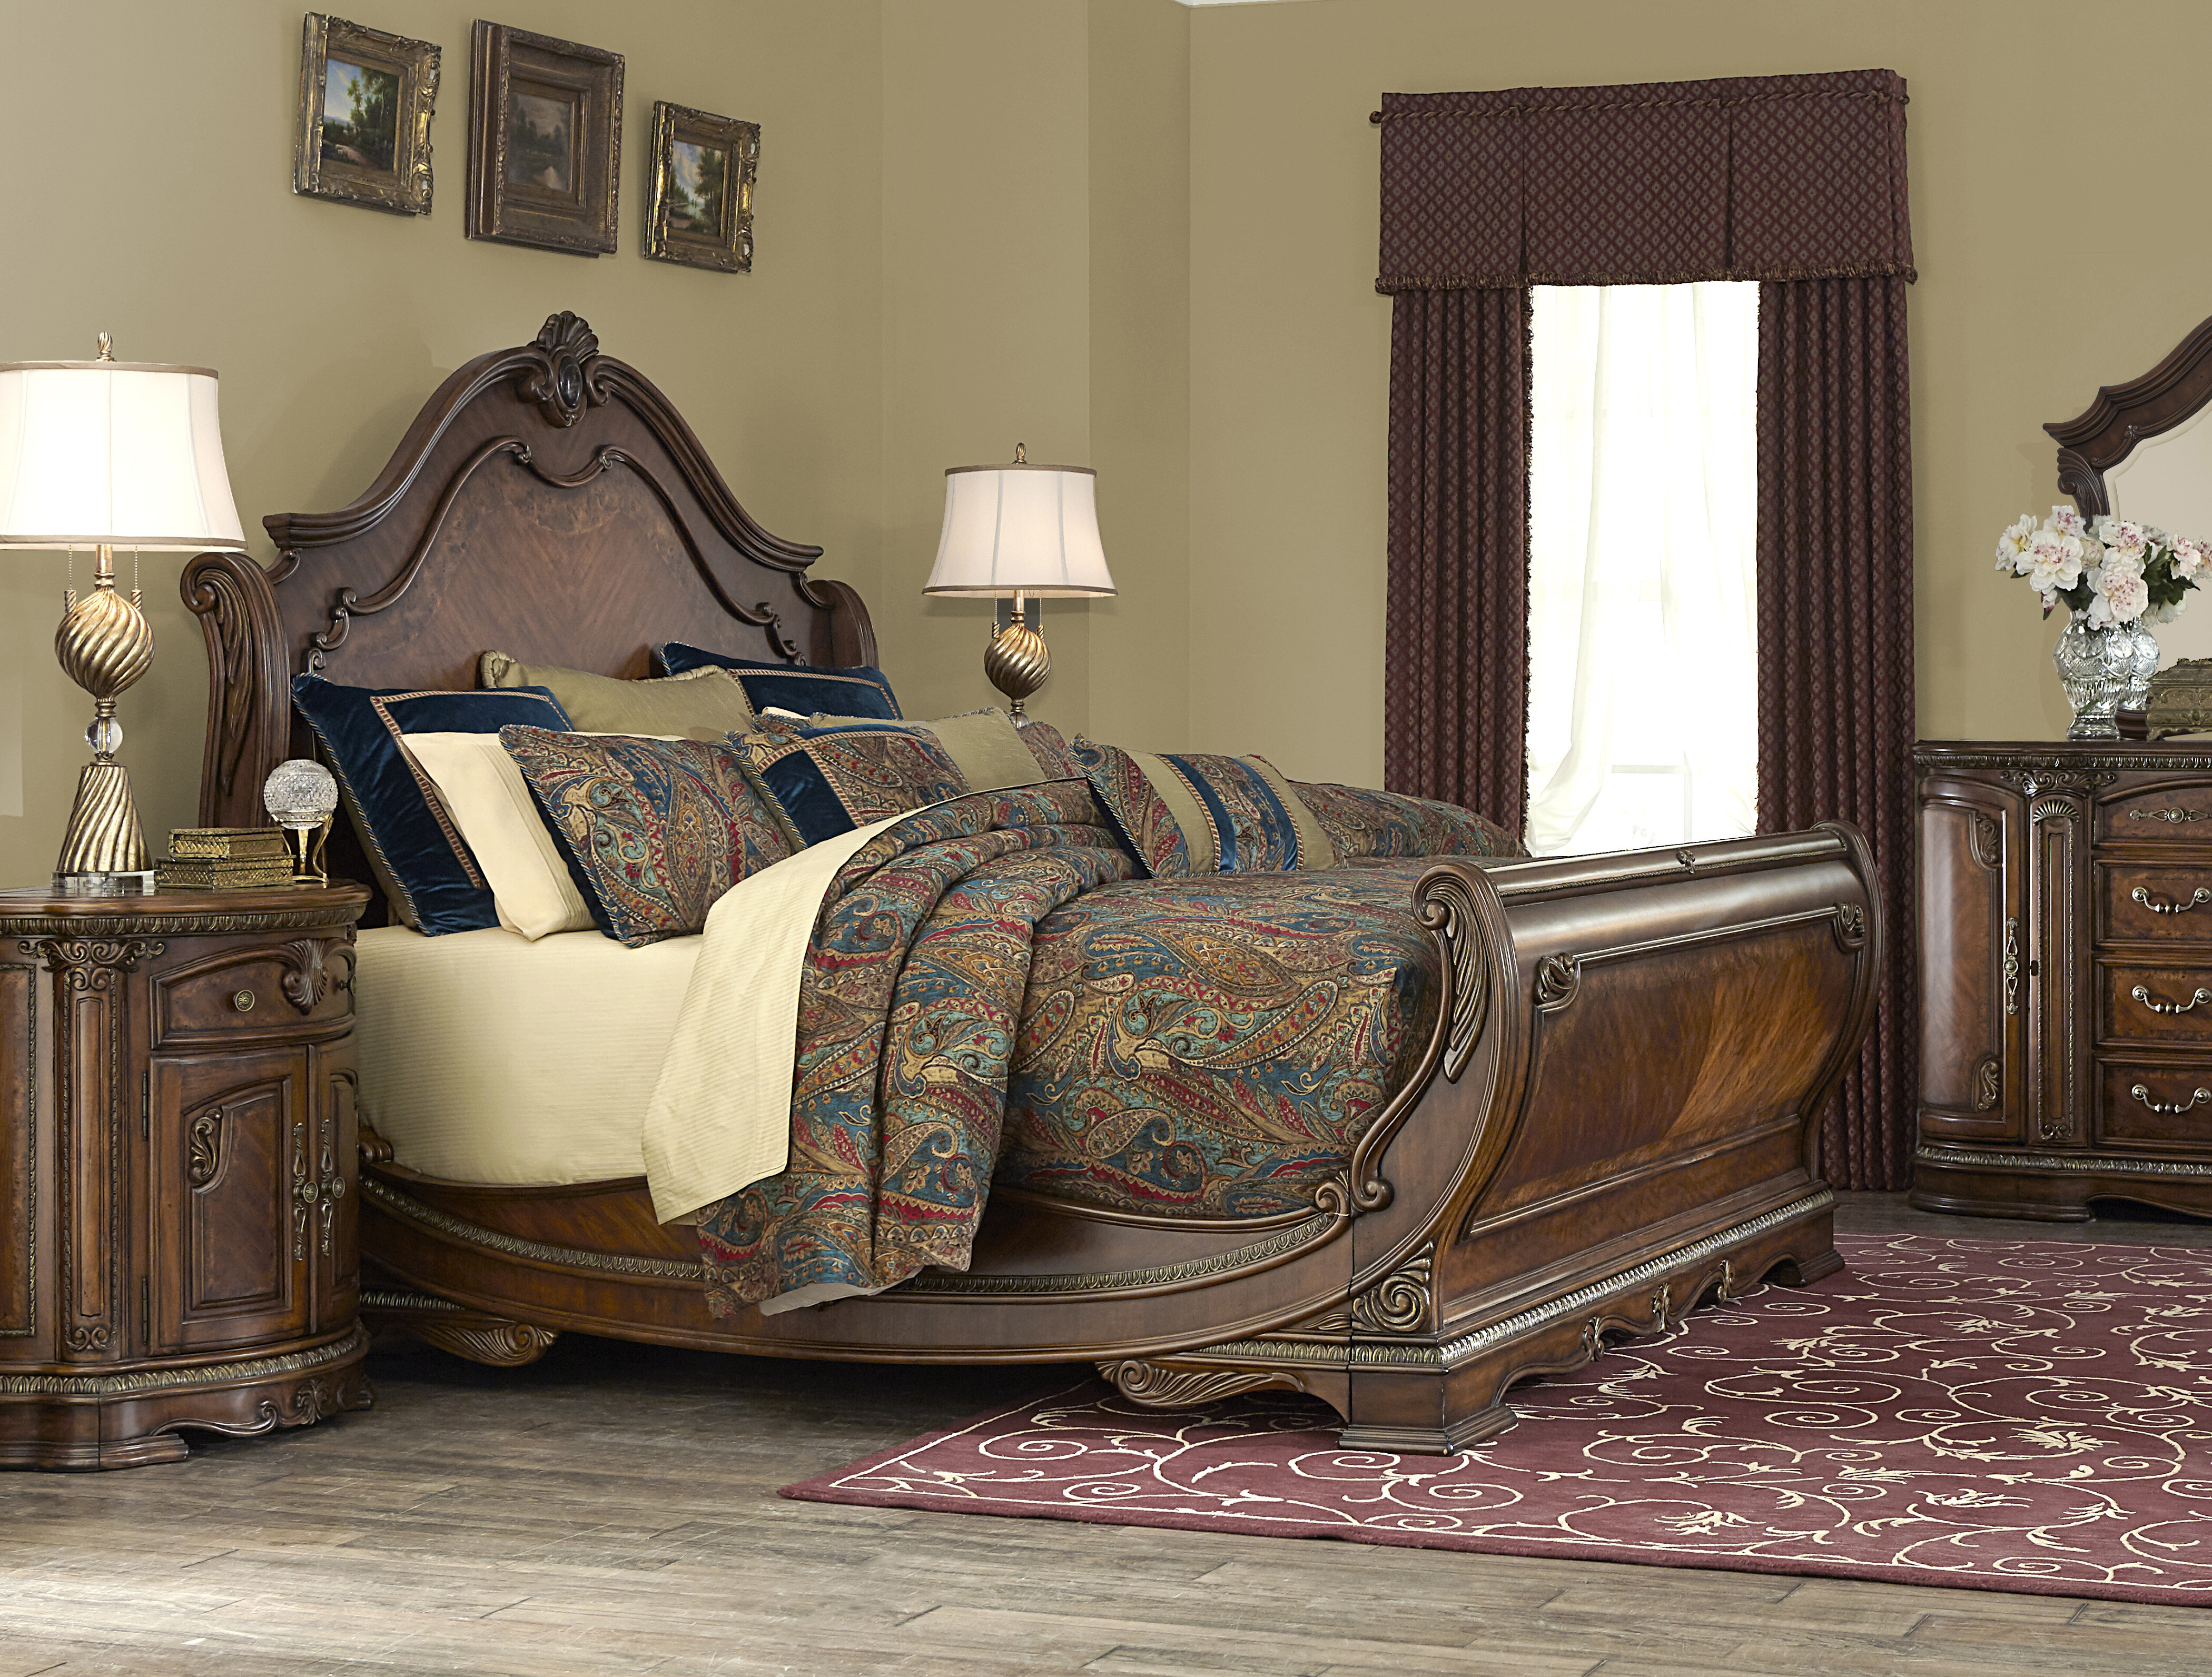 trim sleigh threshold queen hooker width furniture with products archivistqueen height bed archivist beds item toffee